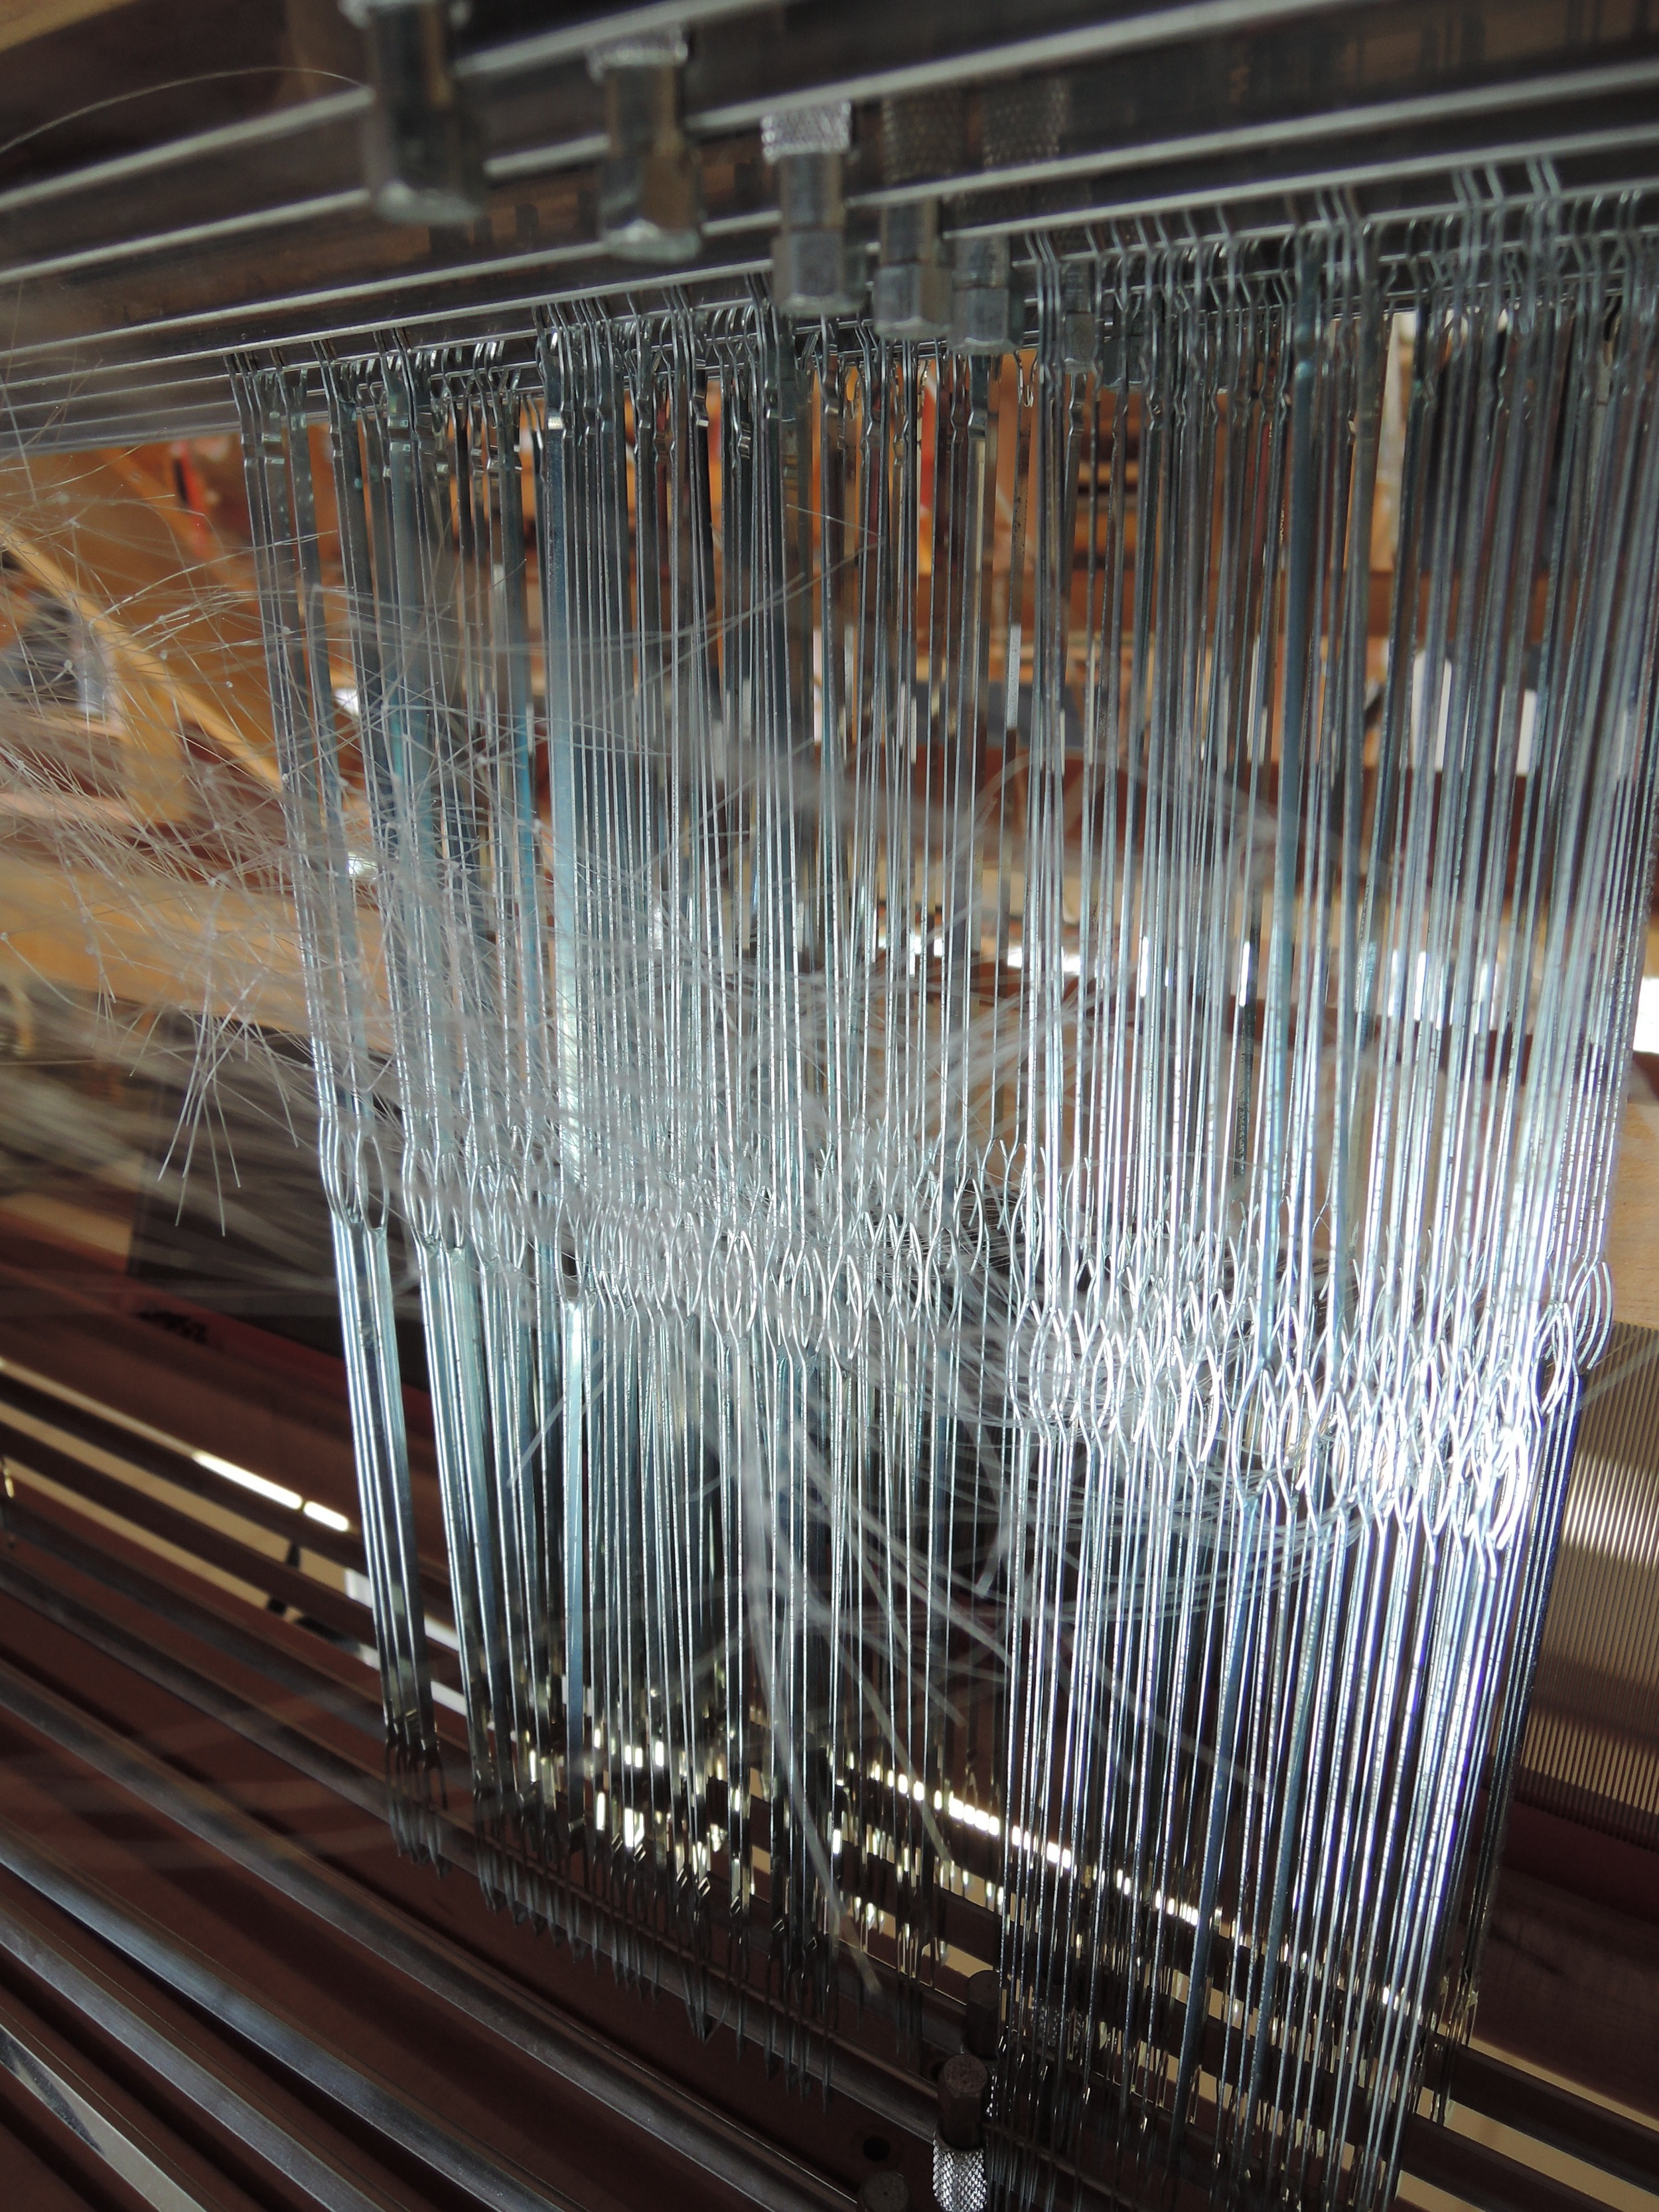 The threads are nearly invisible, but they're all neatly threaded through each of those heddles.